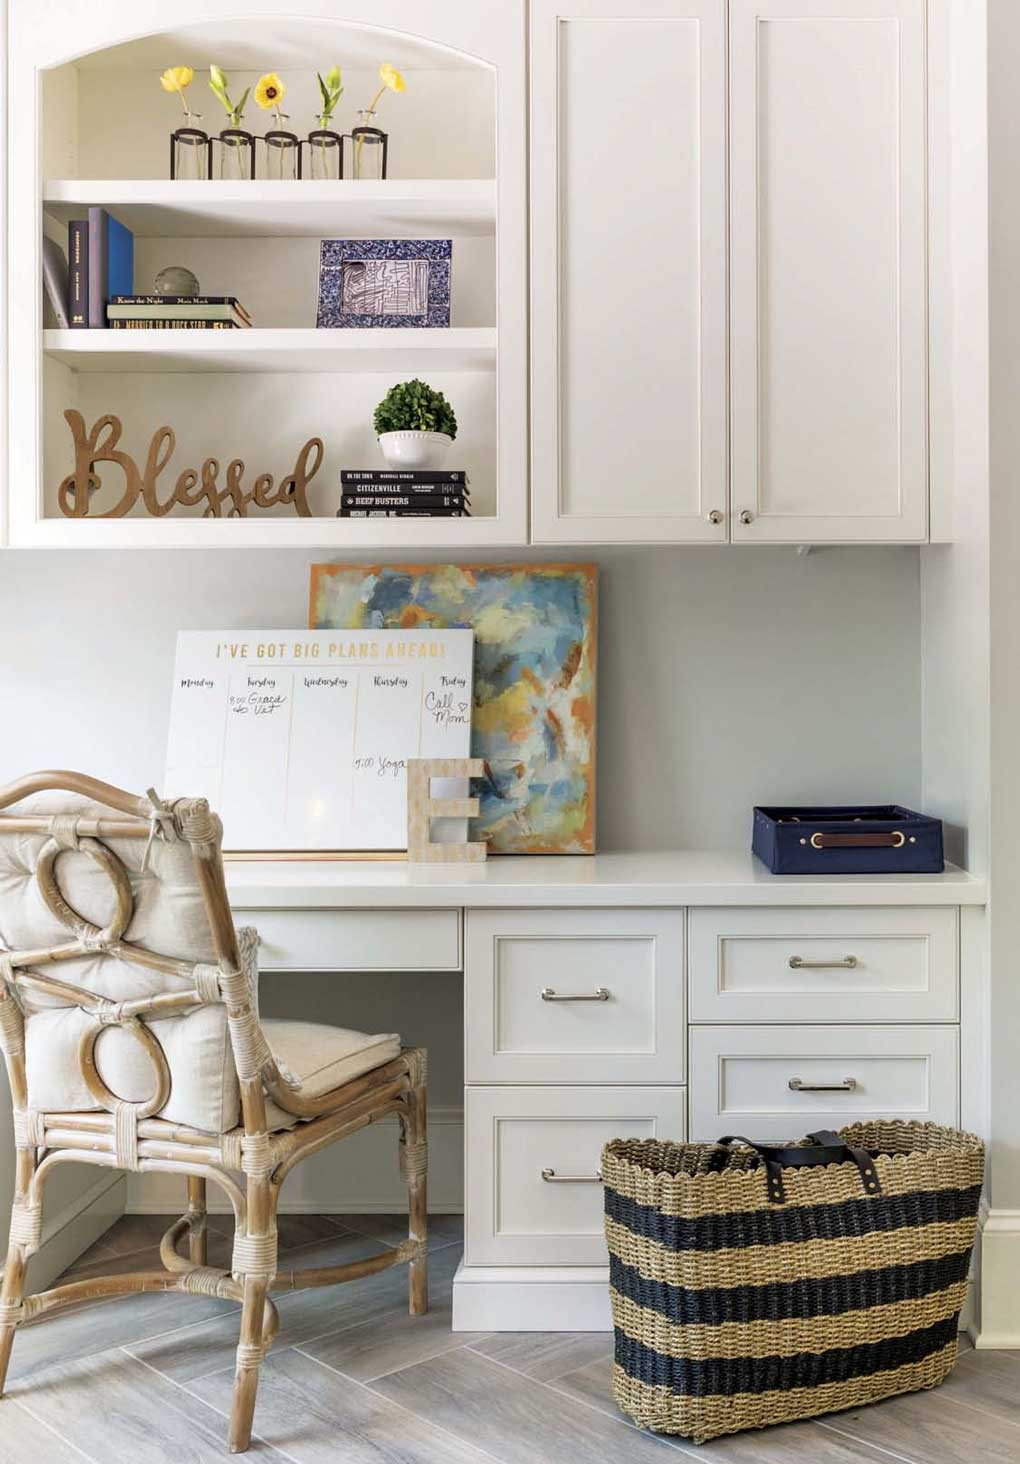 White cabinetry in a home office with a rattan styled chair next to a woven shoulder bag.